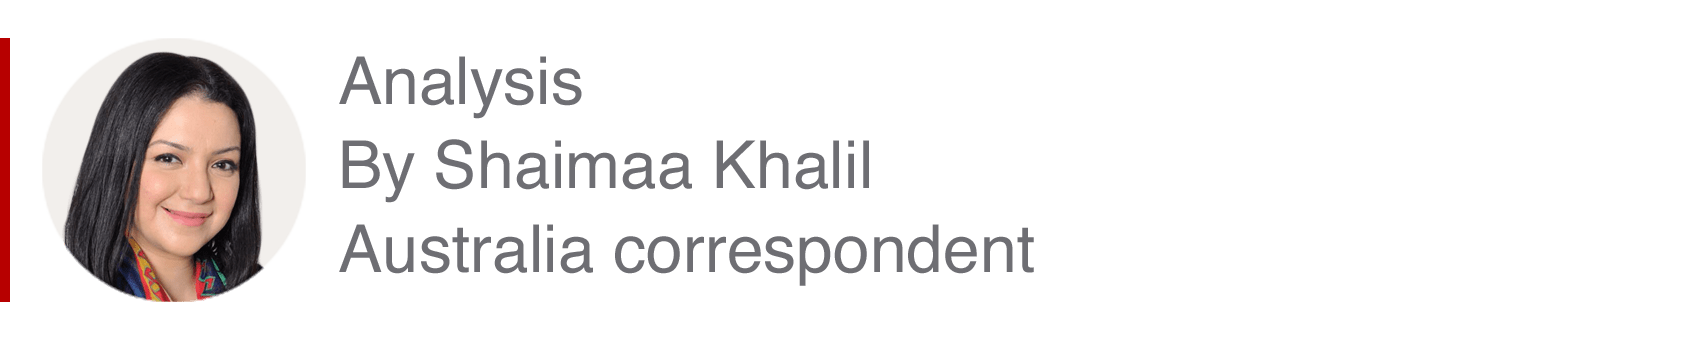 Analysis box by Shaimaa Khalil, Australia correspondent